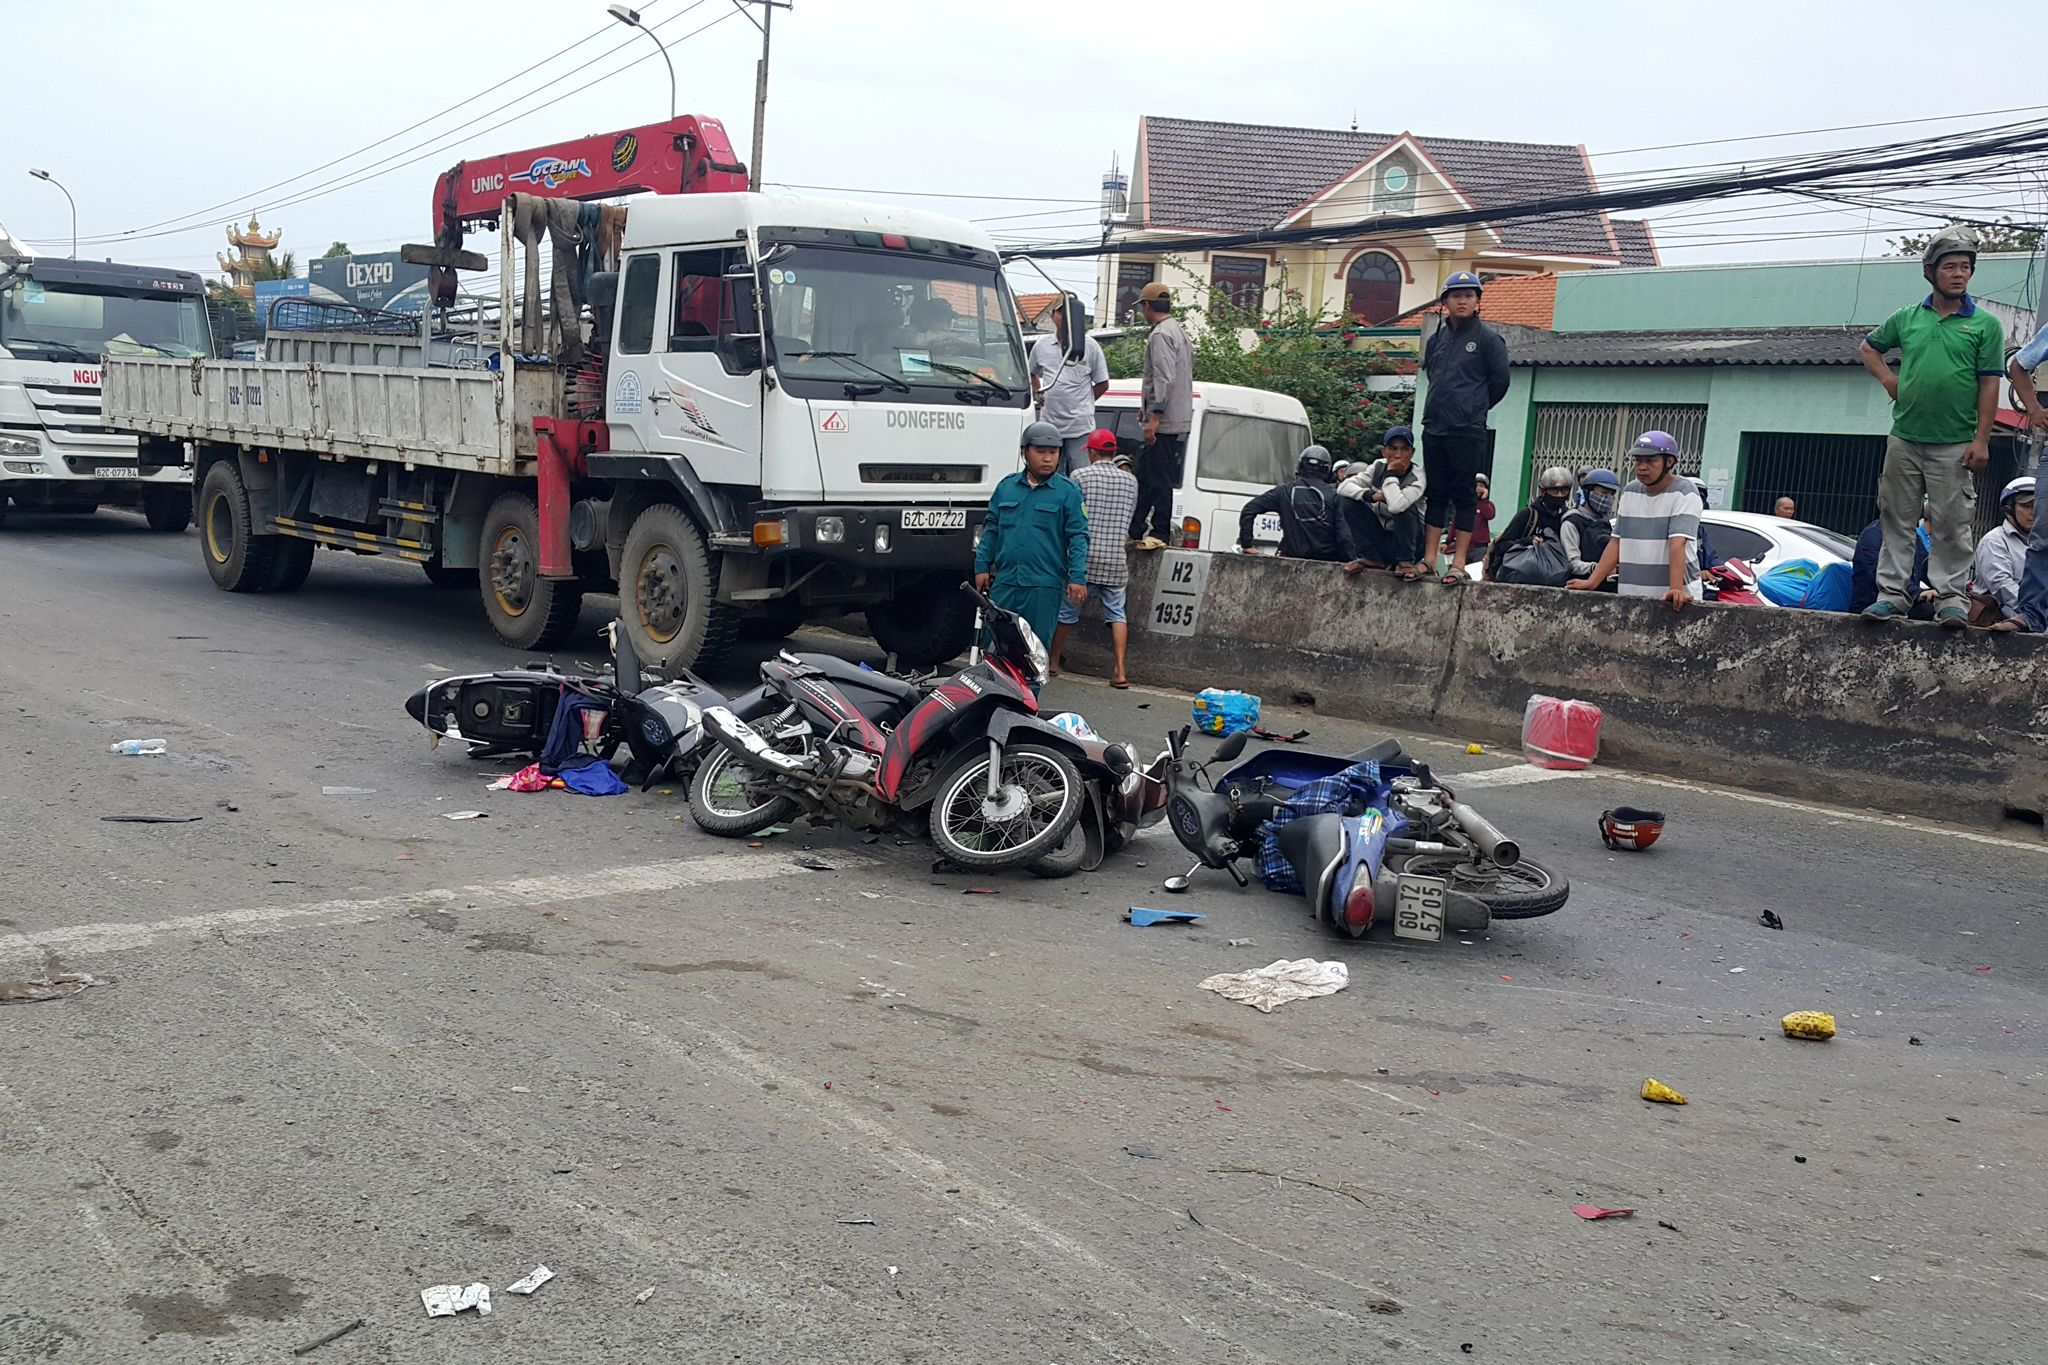 Drunk Driver Plunges Container Truck Into 25 Motorbikes at